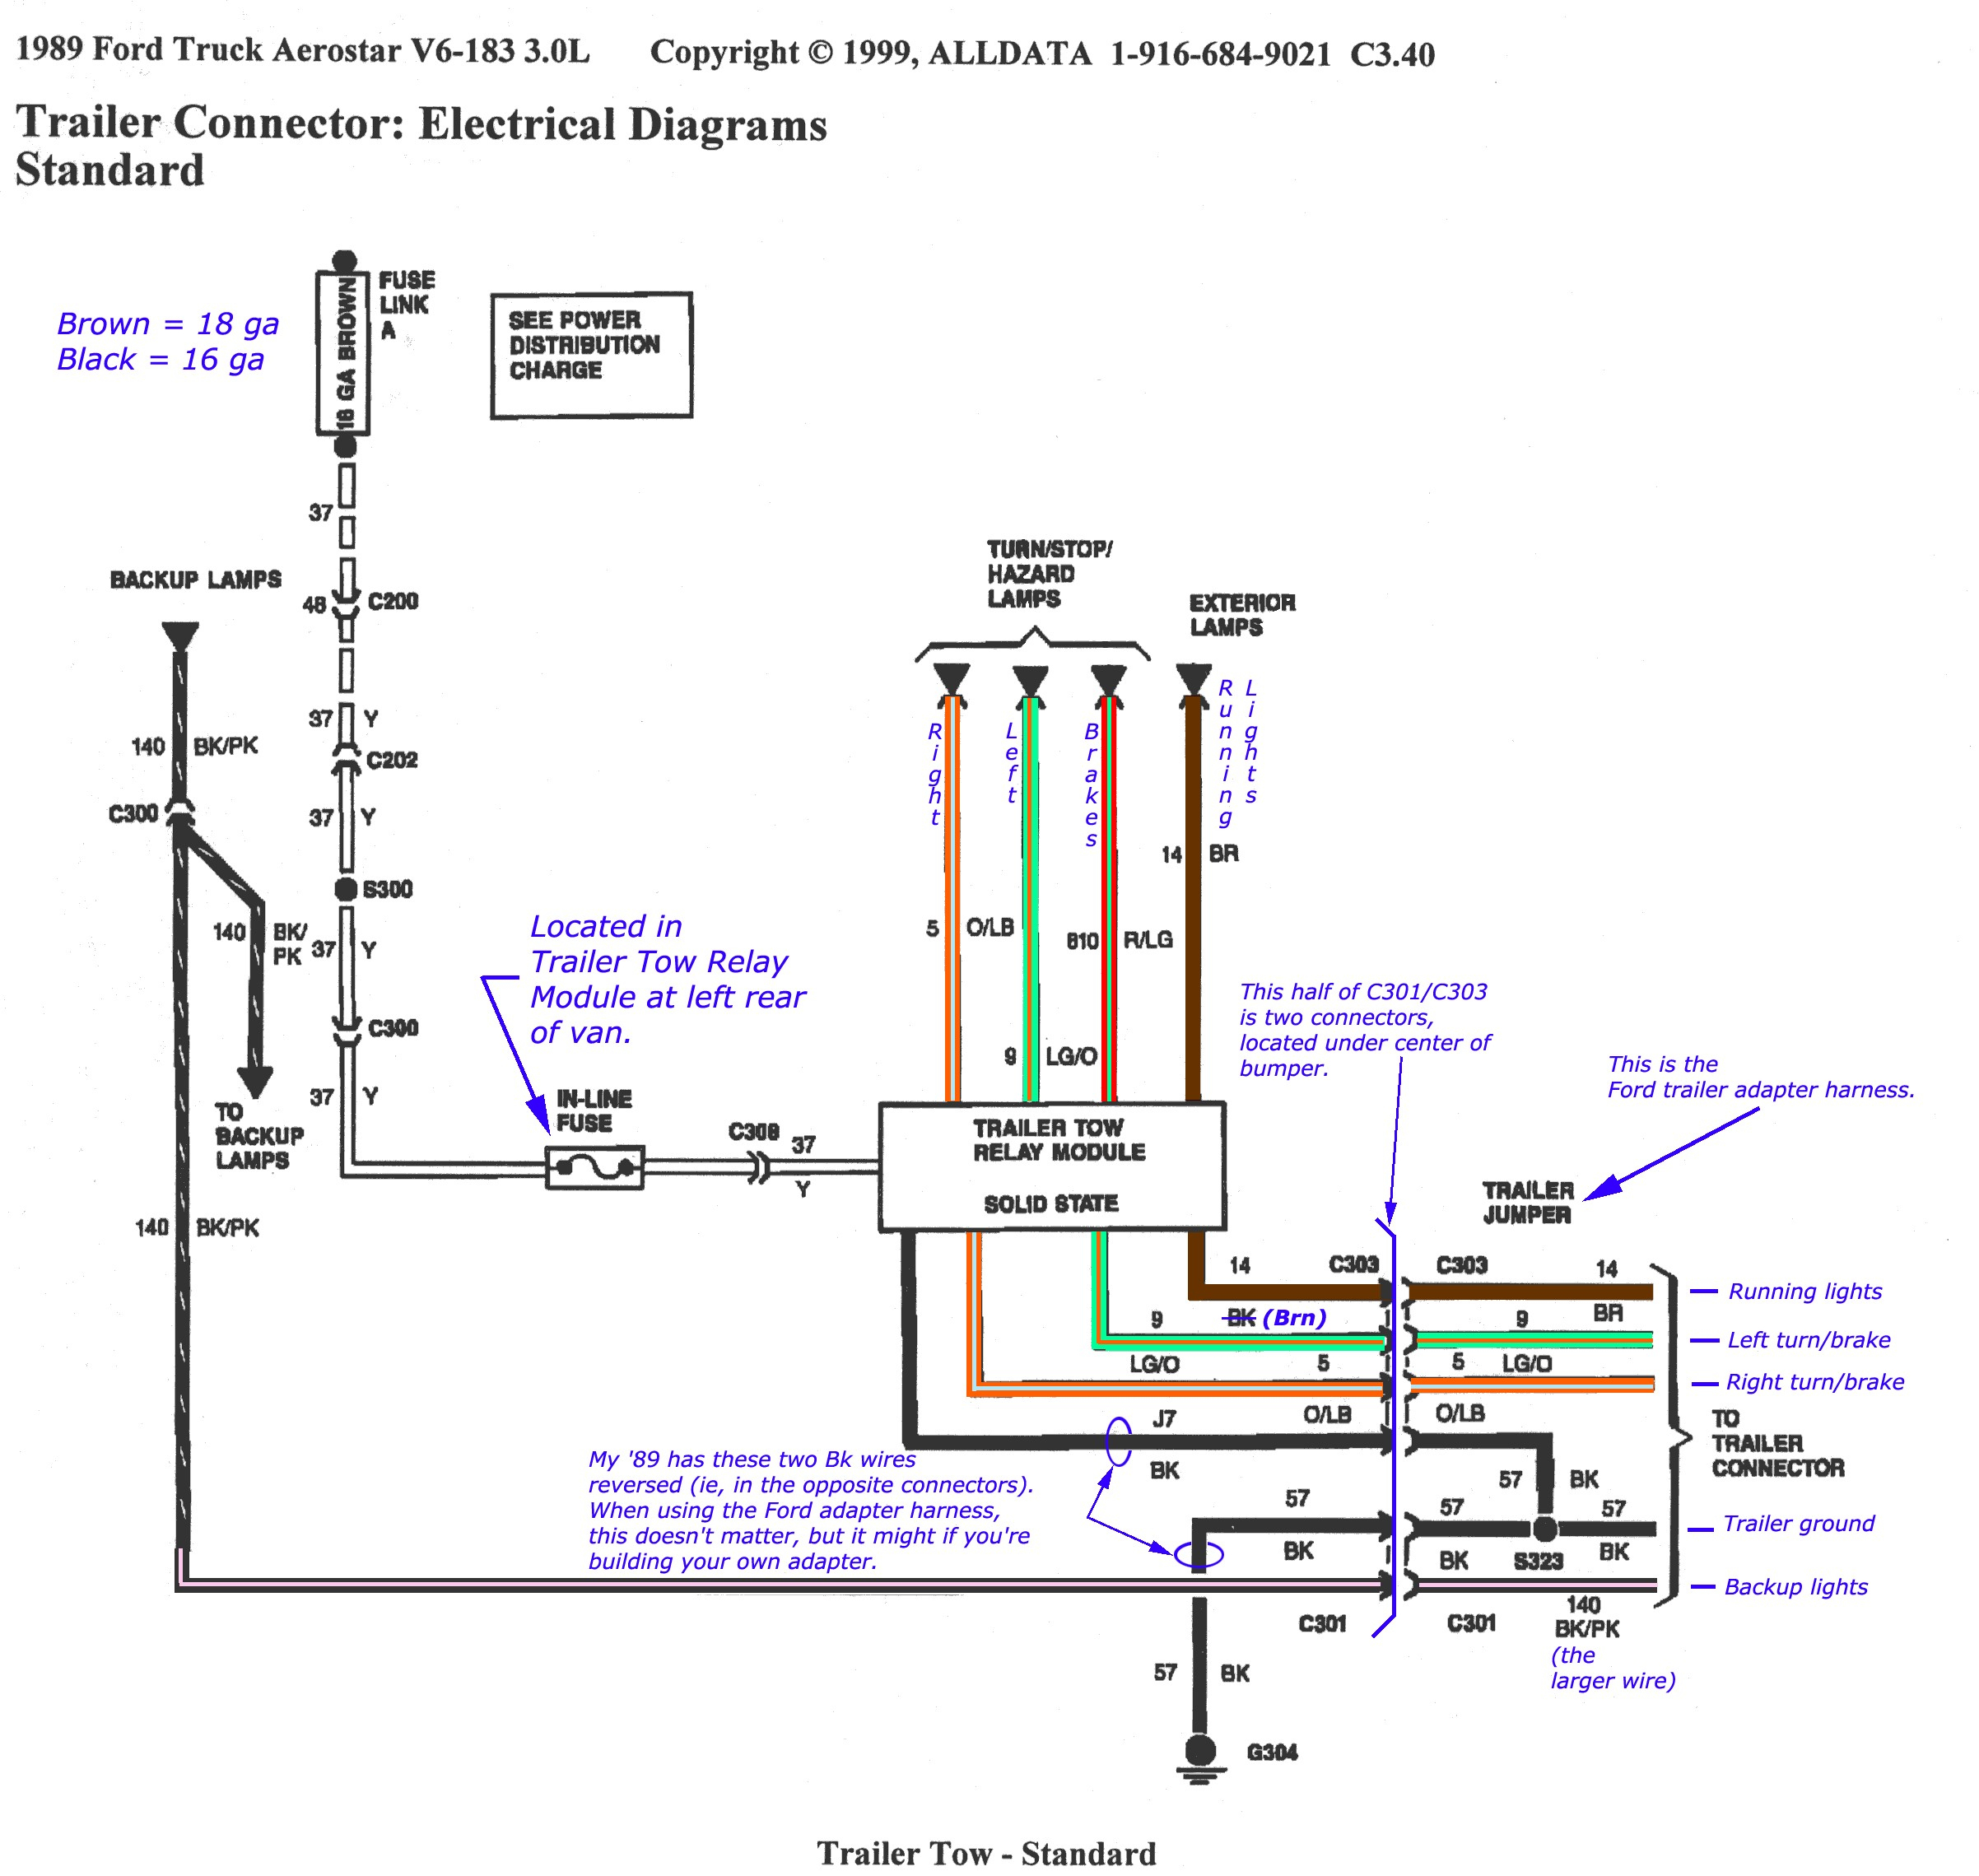 Trailer Wiring Diagram For 1999 Ford F250 | Wiring Diagram - 1999 F350 Trailer Wiring Diagram